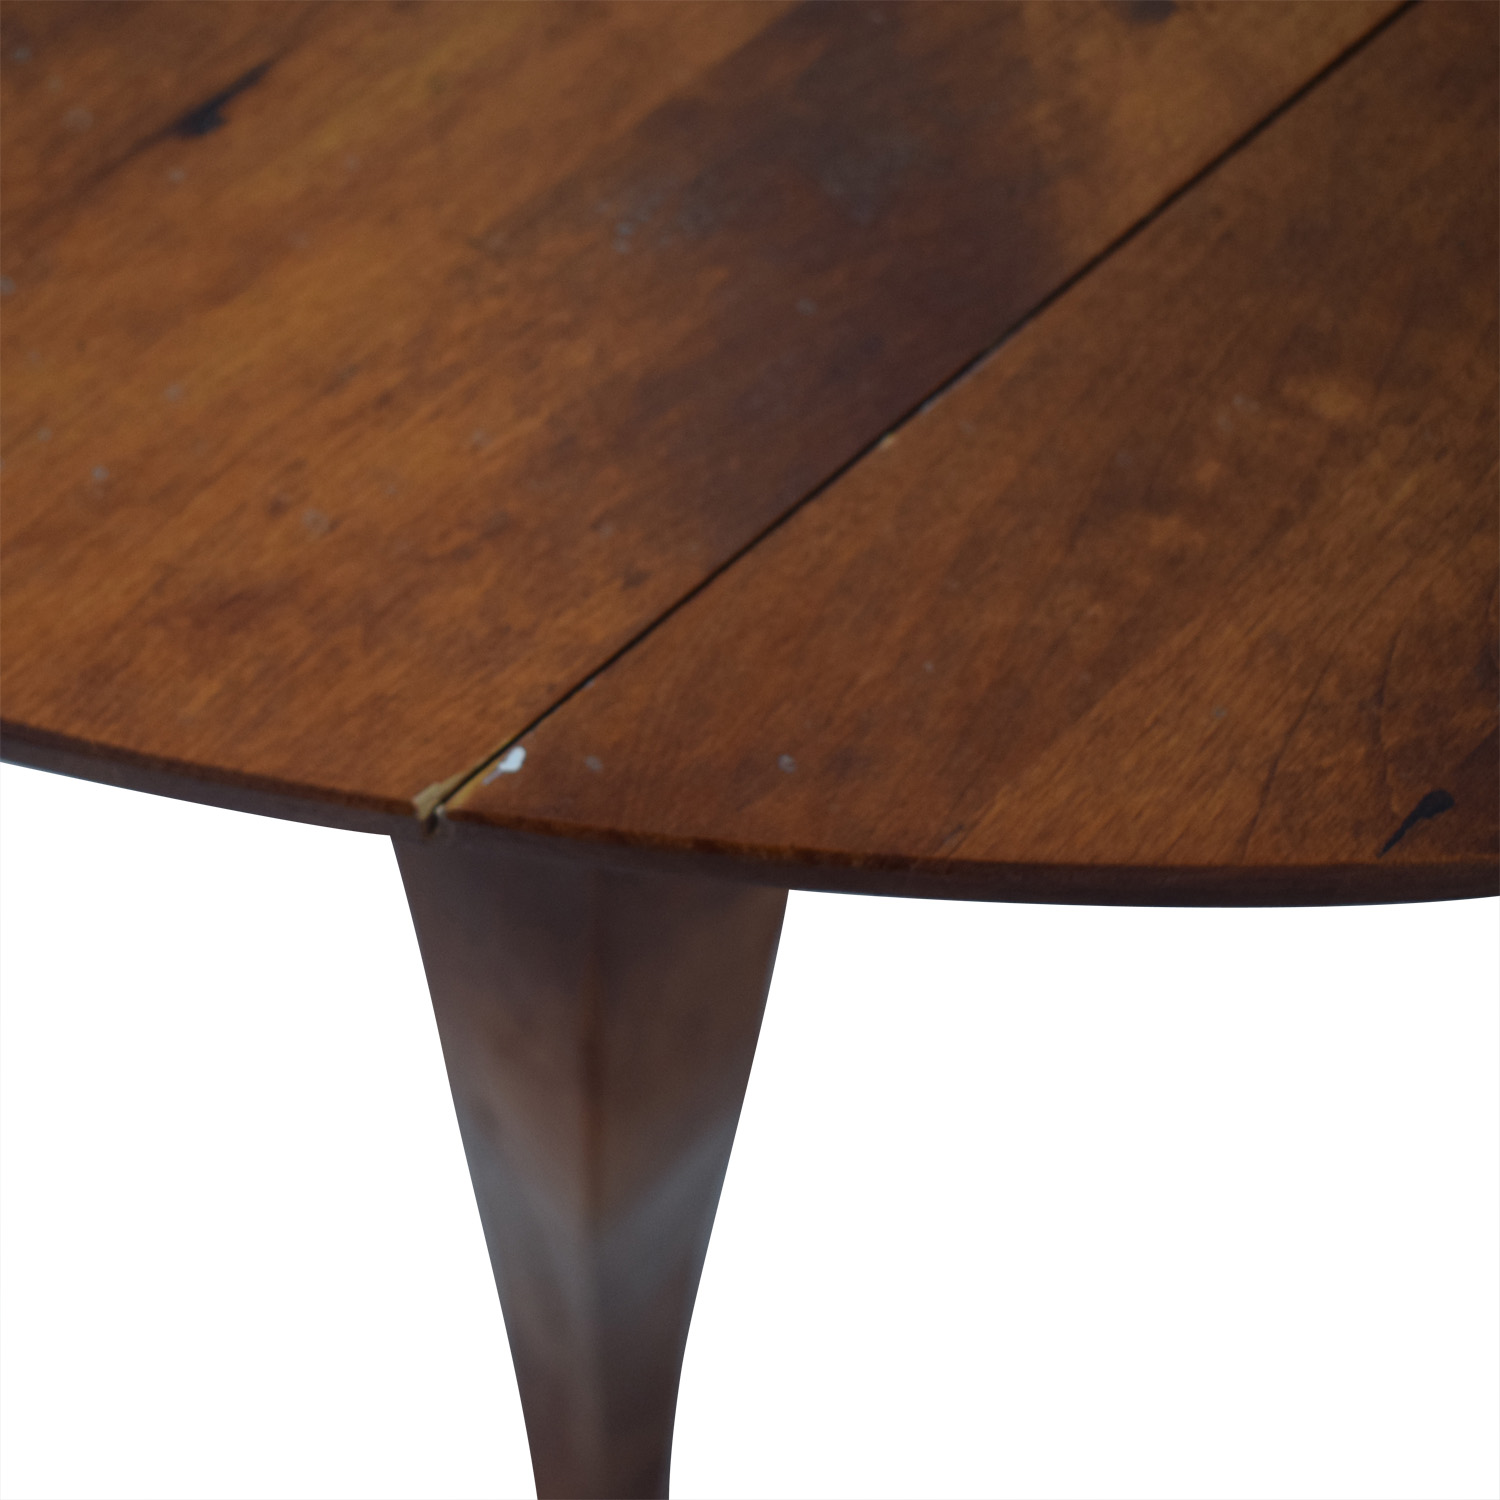 Folding Leaf Wood Dining Table price